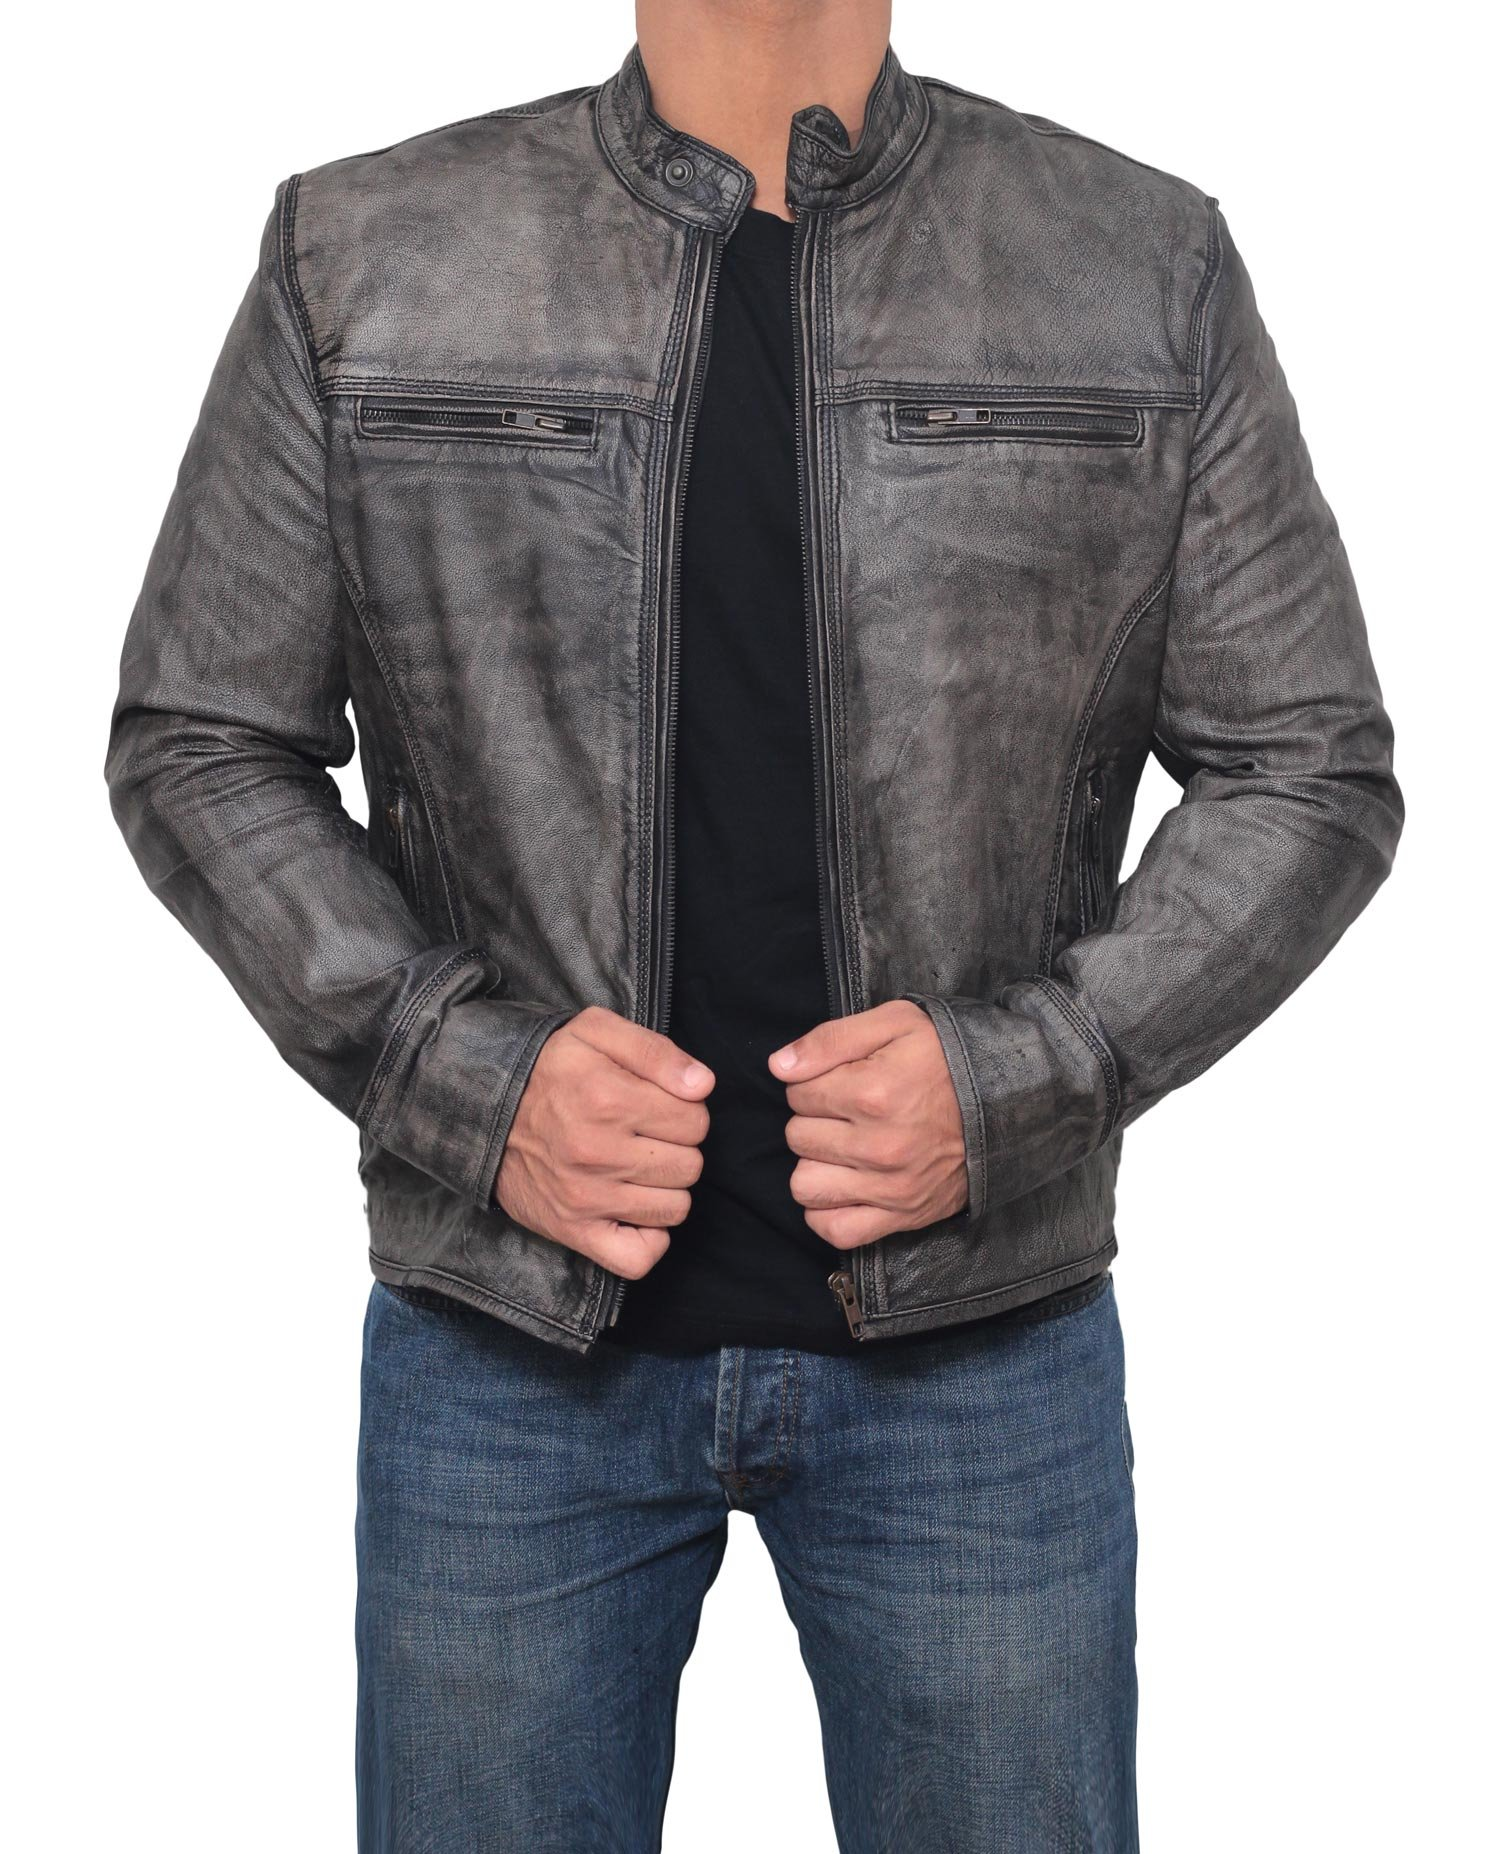 Decrum Mens Garcia Fitted Distressed Grey Authentic Lambskin Leather Motorcycle Jacket - XL by Decrum